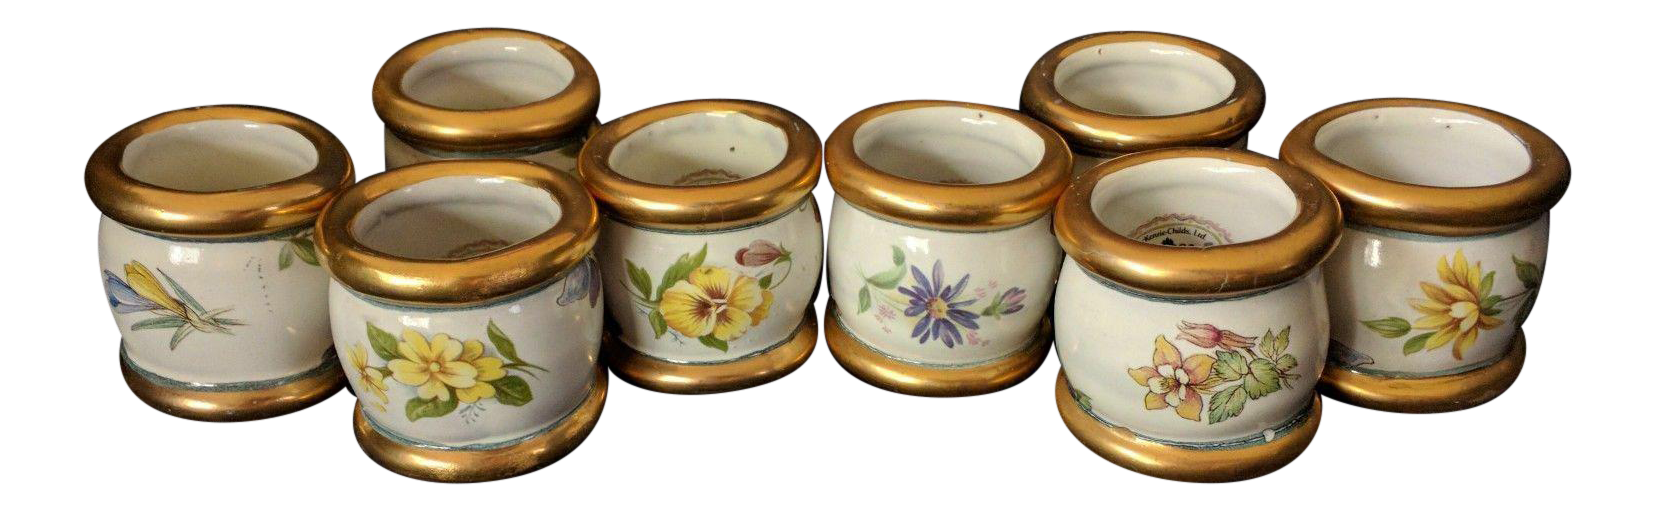 Mackenzie Childs Pottery Ceramic Gold Pink Flower Chelsea Lustre Ring Around The Posie Napkin Rings Set Of 8 Chairish